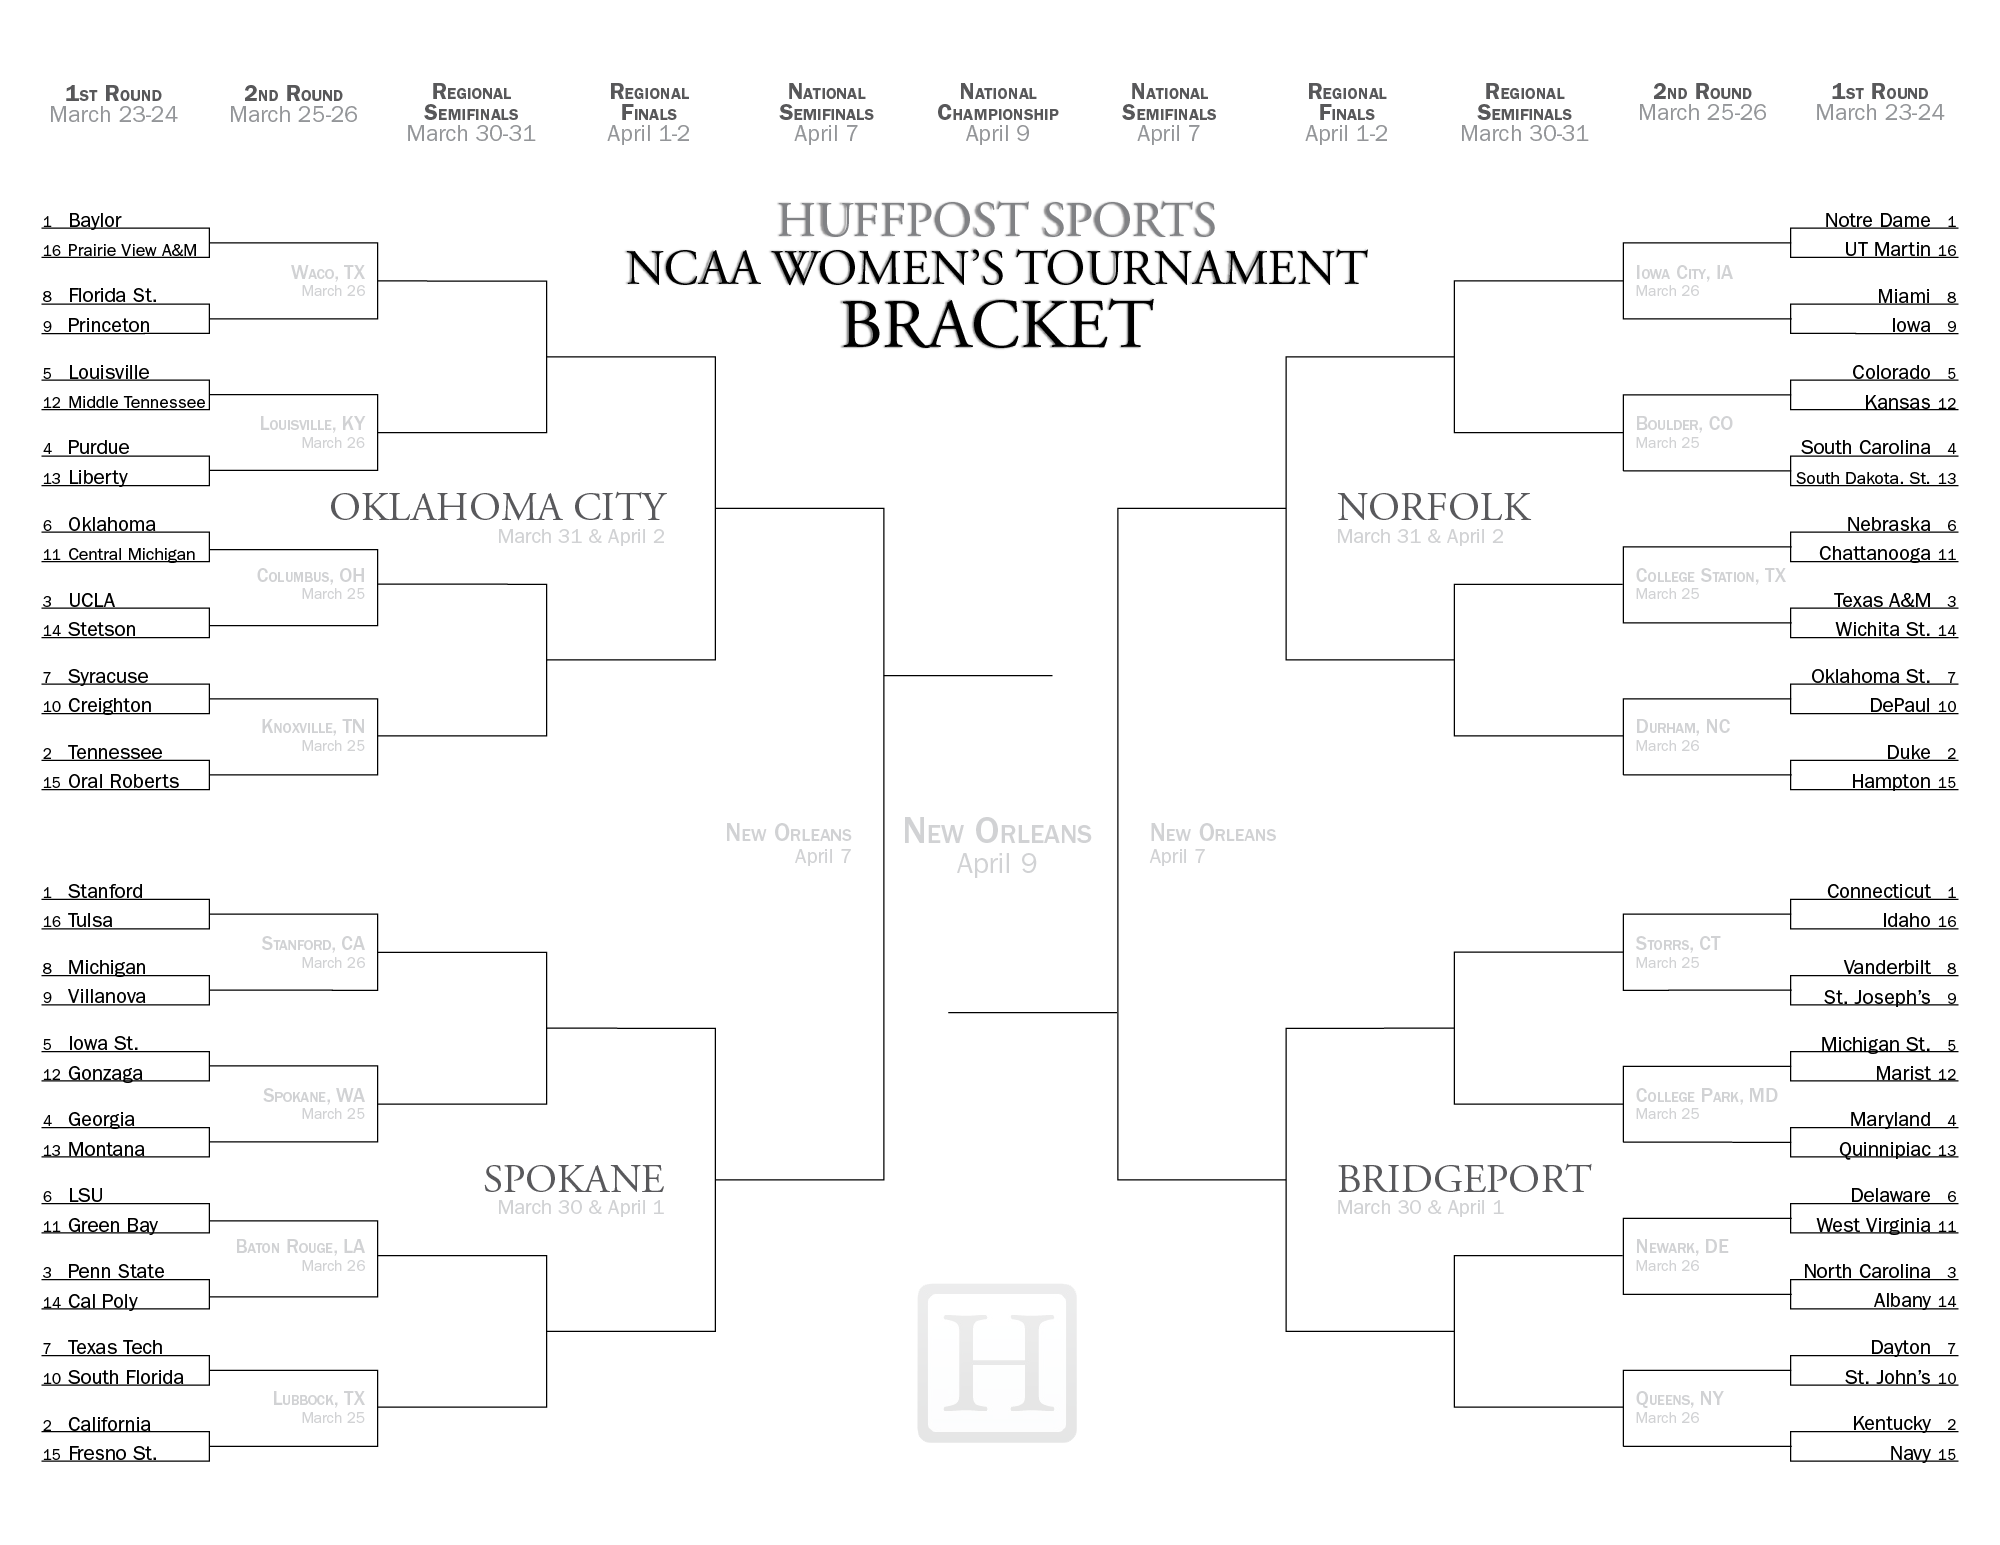 NCAA Women's Bracket 2013: PRINTABLE Tournament Field For March